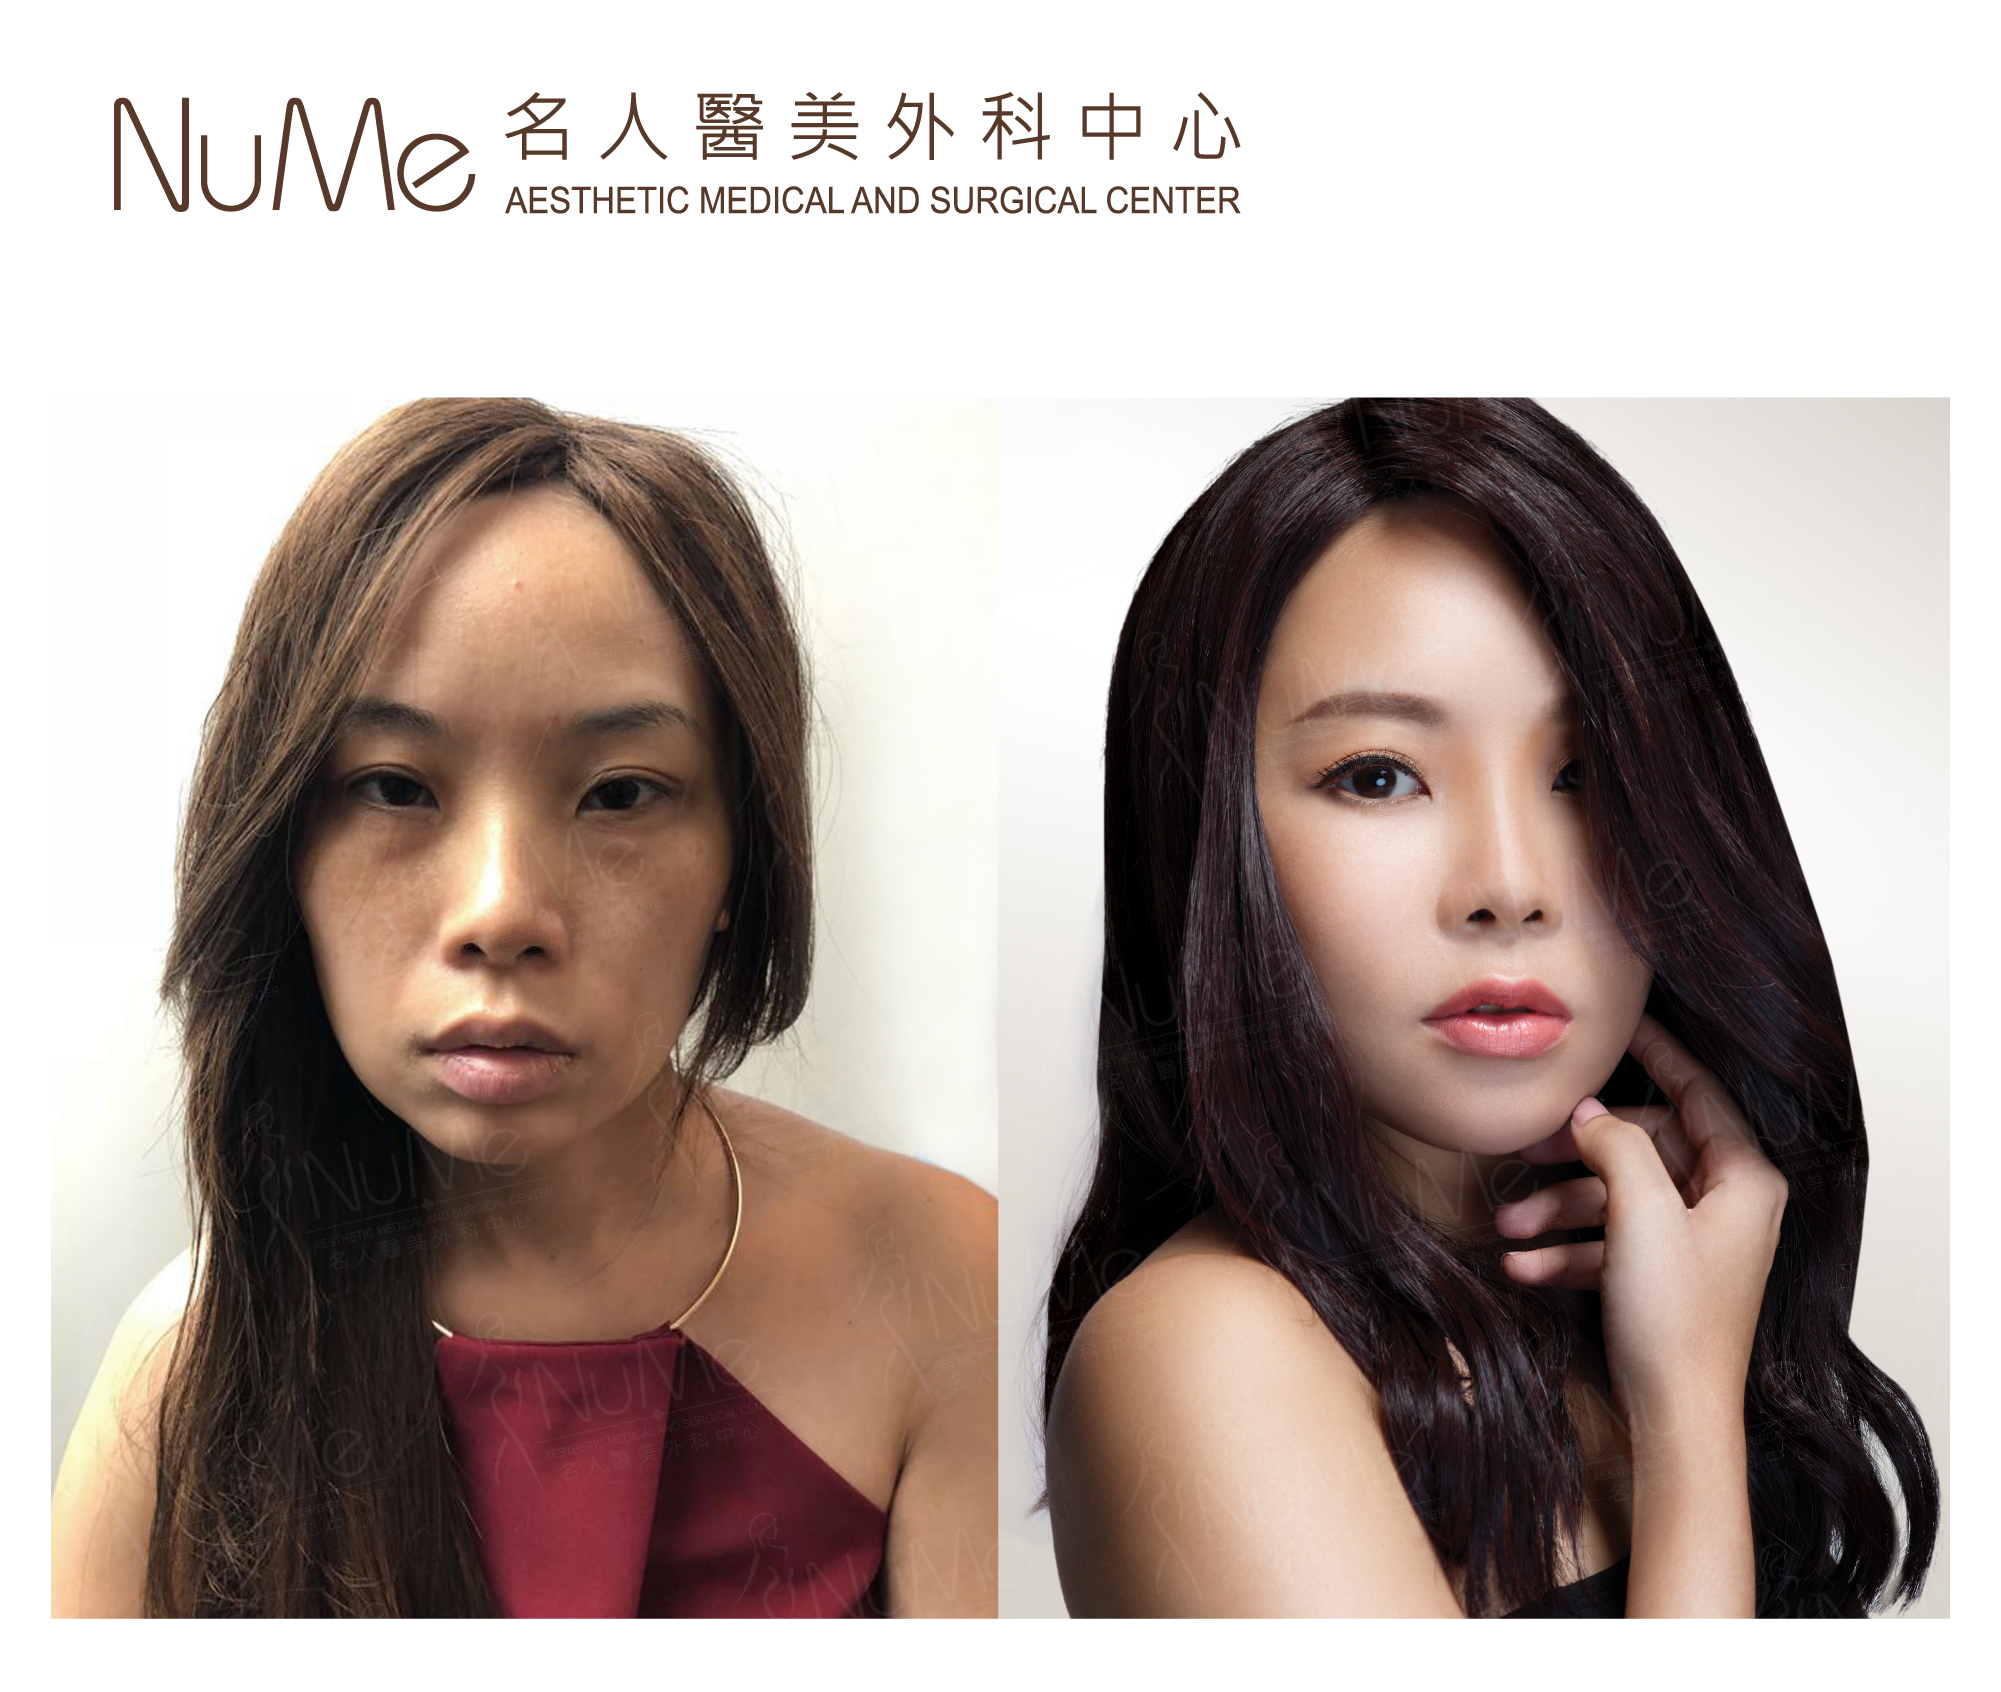 NuMe-Facebook-Before-After-Photos-Comments-Gigi-Ms-Li-03.jpg